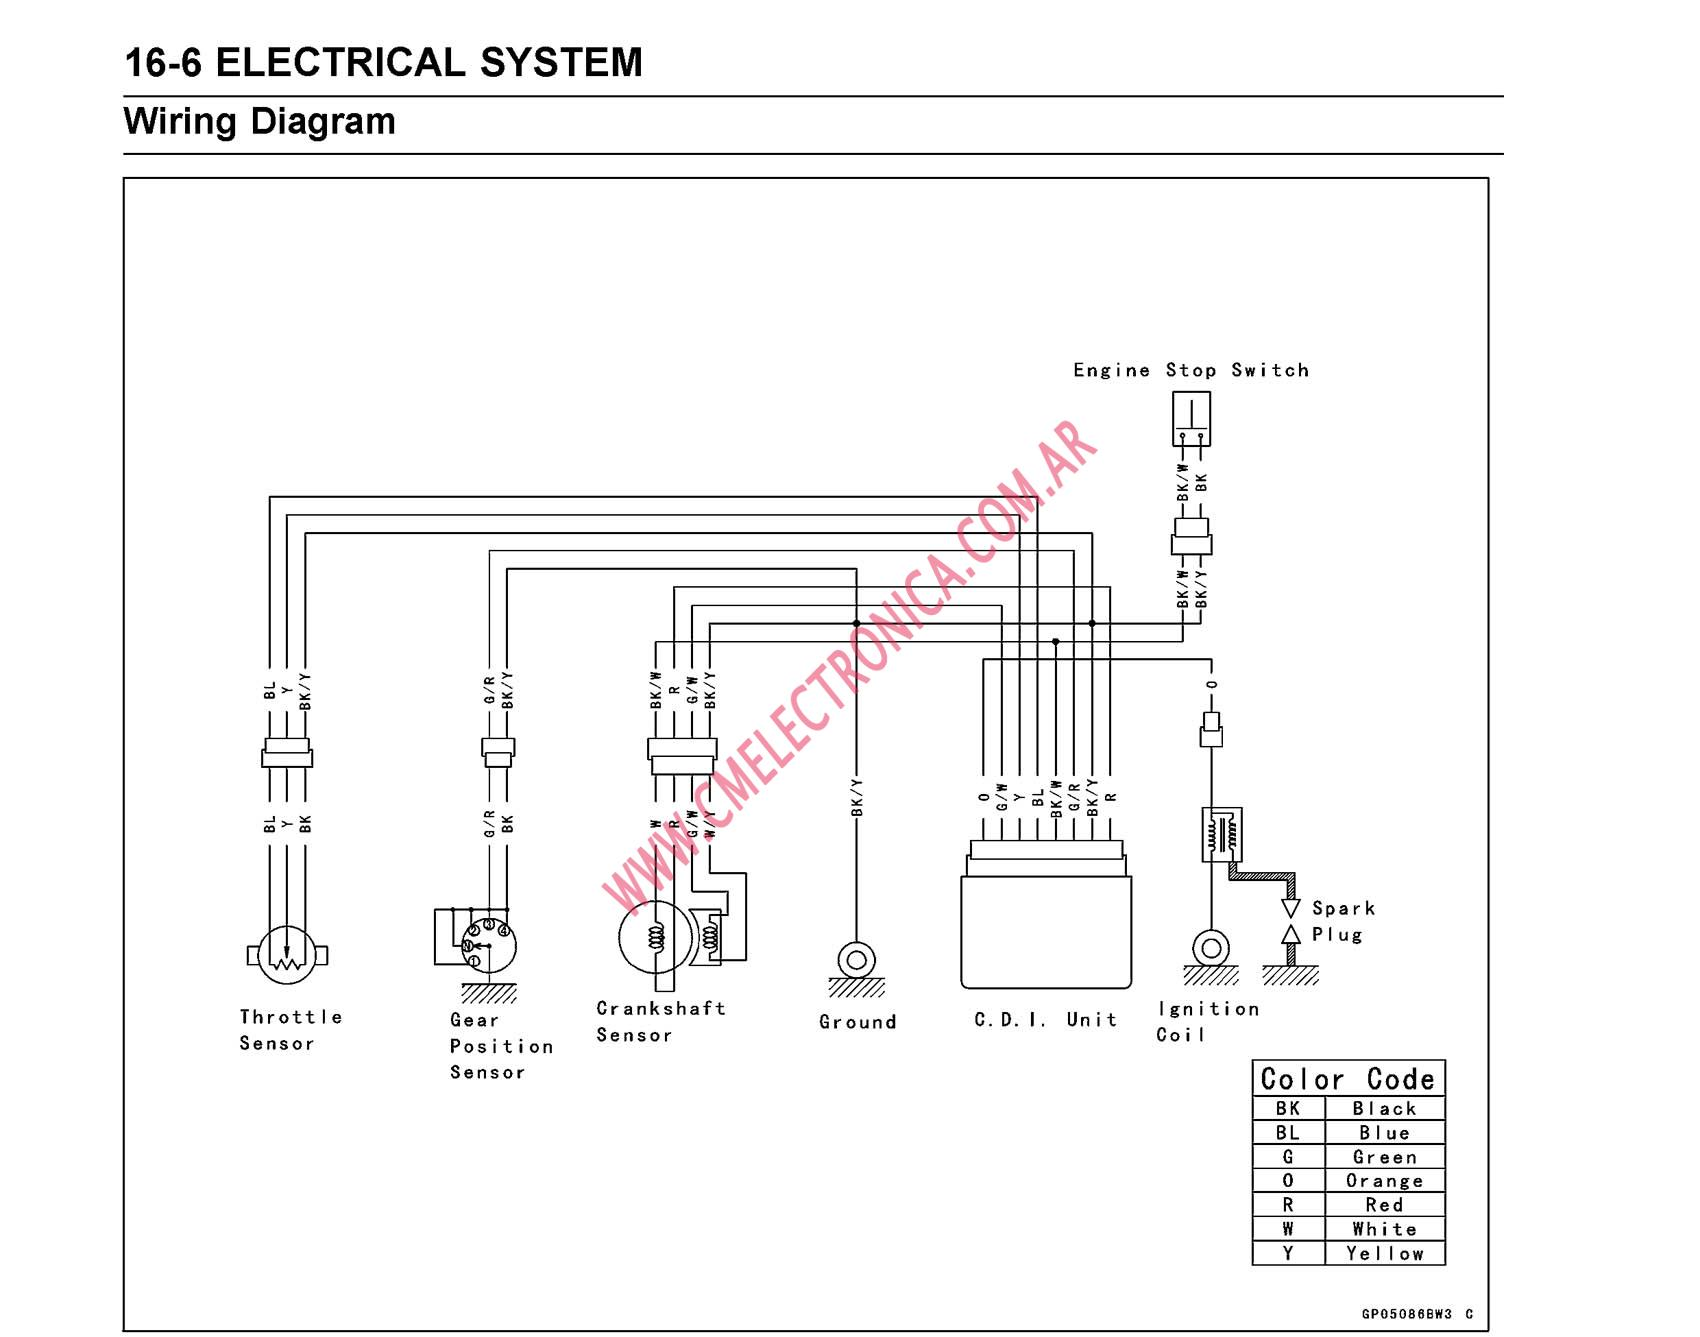 Kawasaki Kx 250 Wiring Diagram Will Be A Thing 1100 Stx 85 Get Free Image Kx250 Diagrams Bayou 220